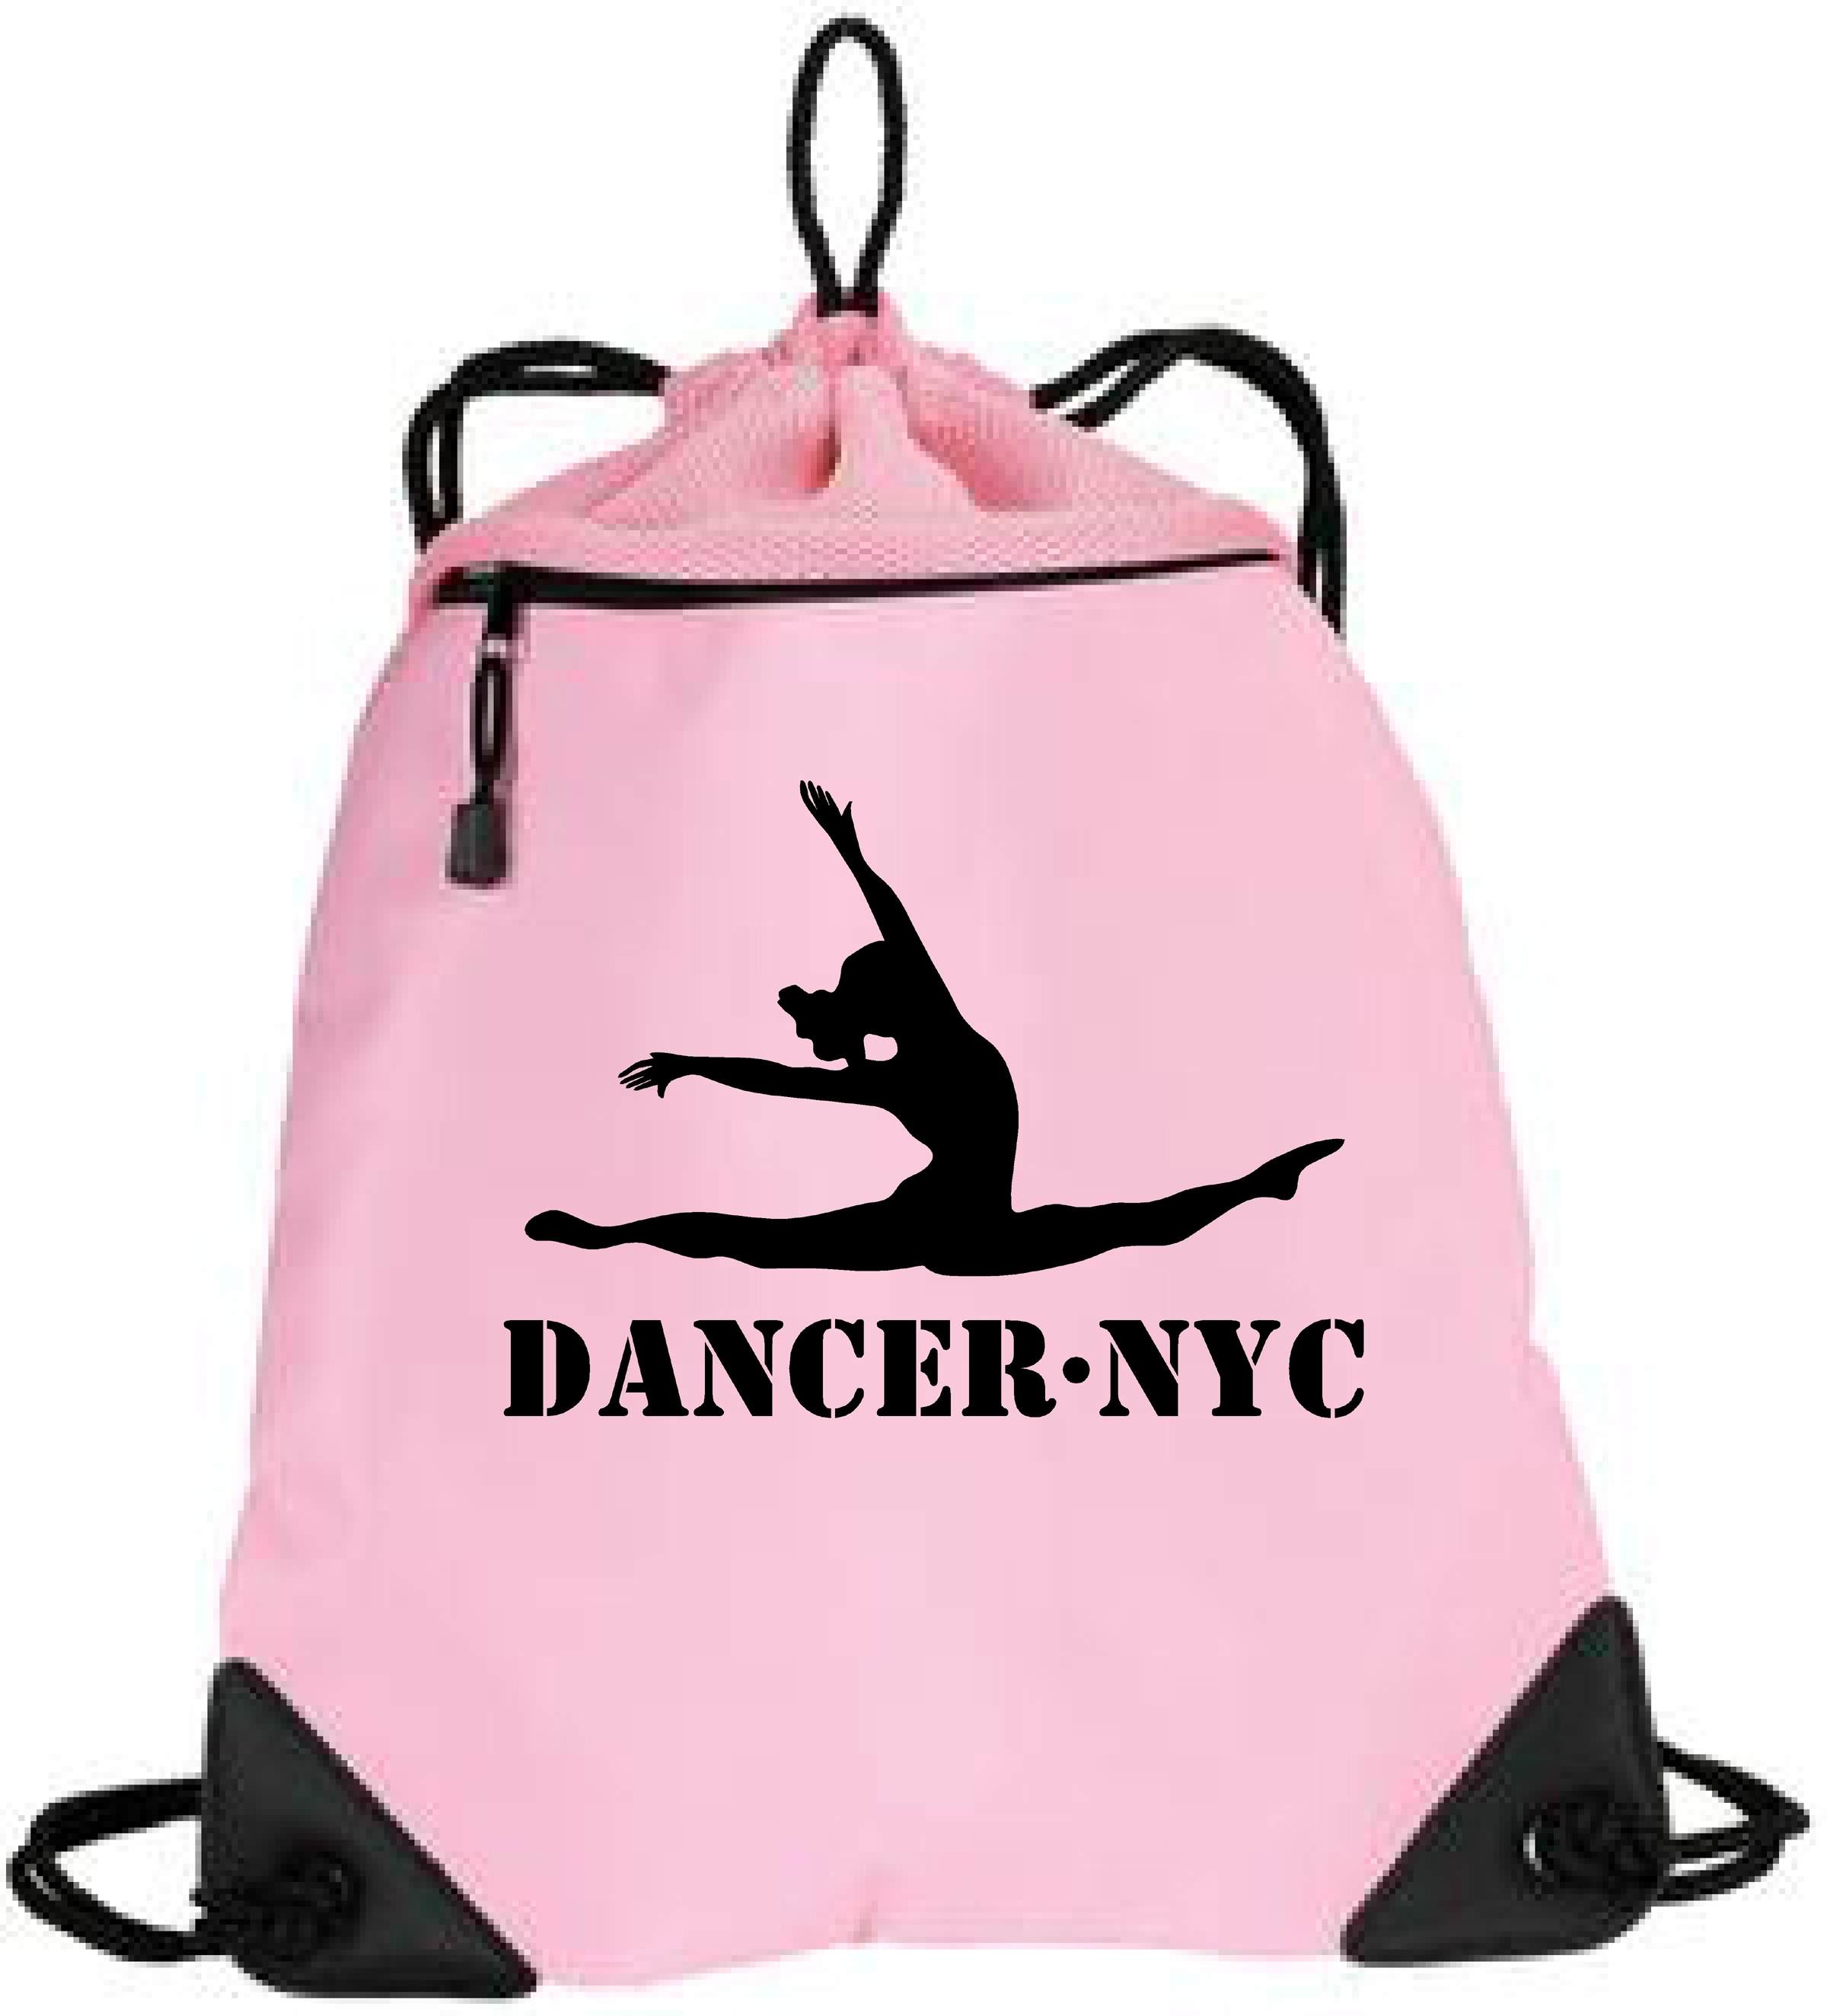 DANCER.NYC TOTE BAG - Ballet Pink